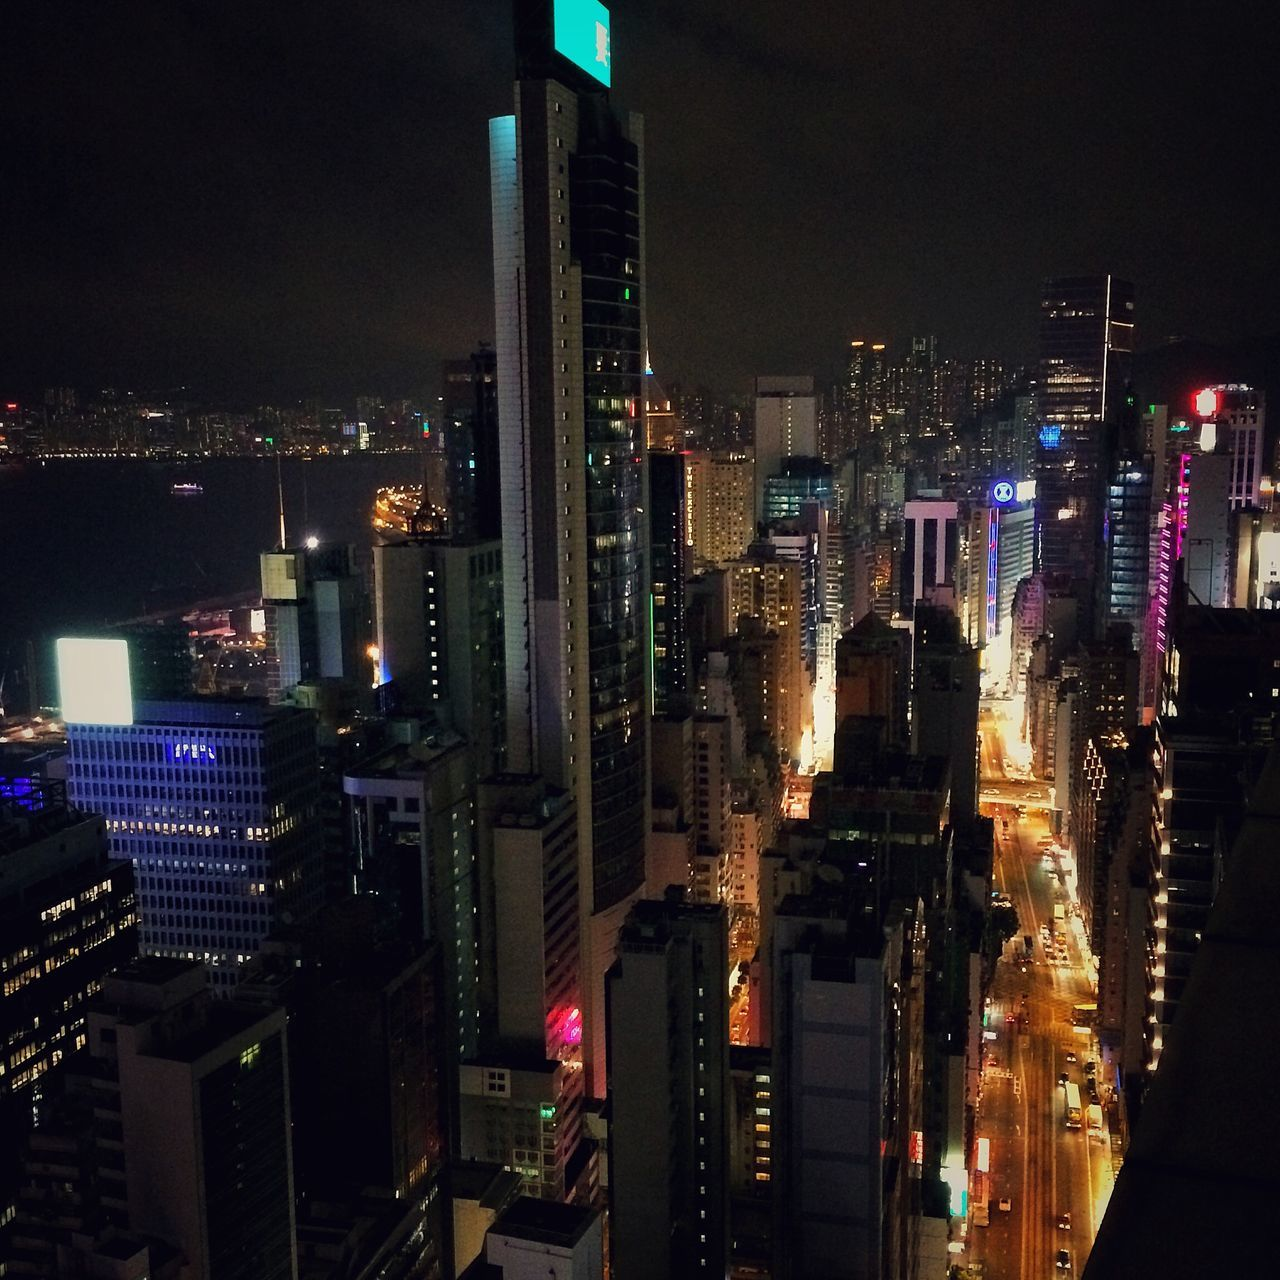 Rooftops HongKong Wanchai Night Nightphotography IPhoneography Rooftops Neon Lights Travel Photography Look Around